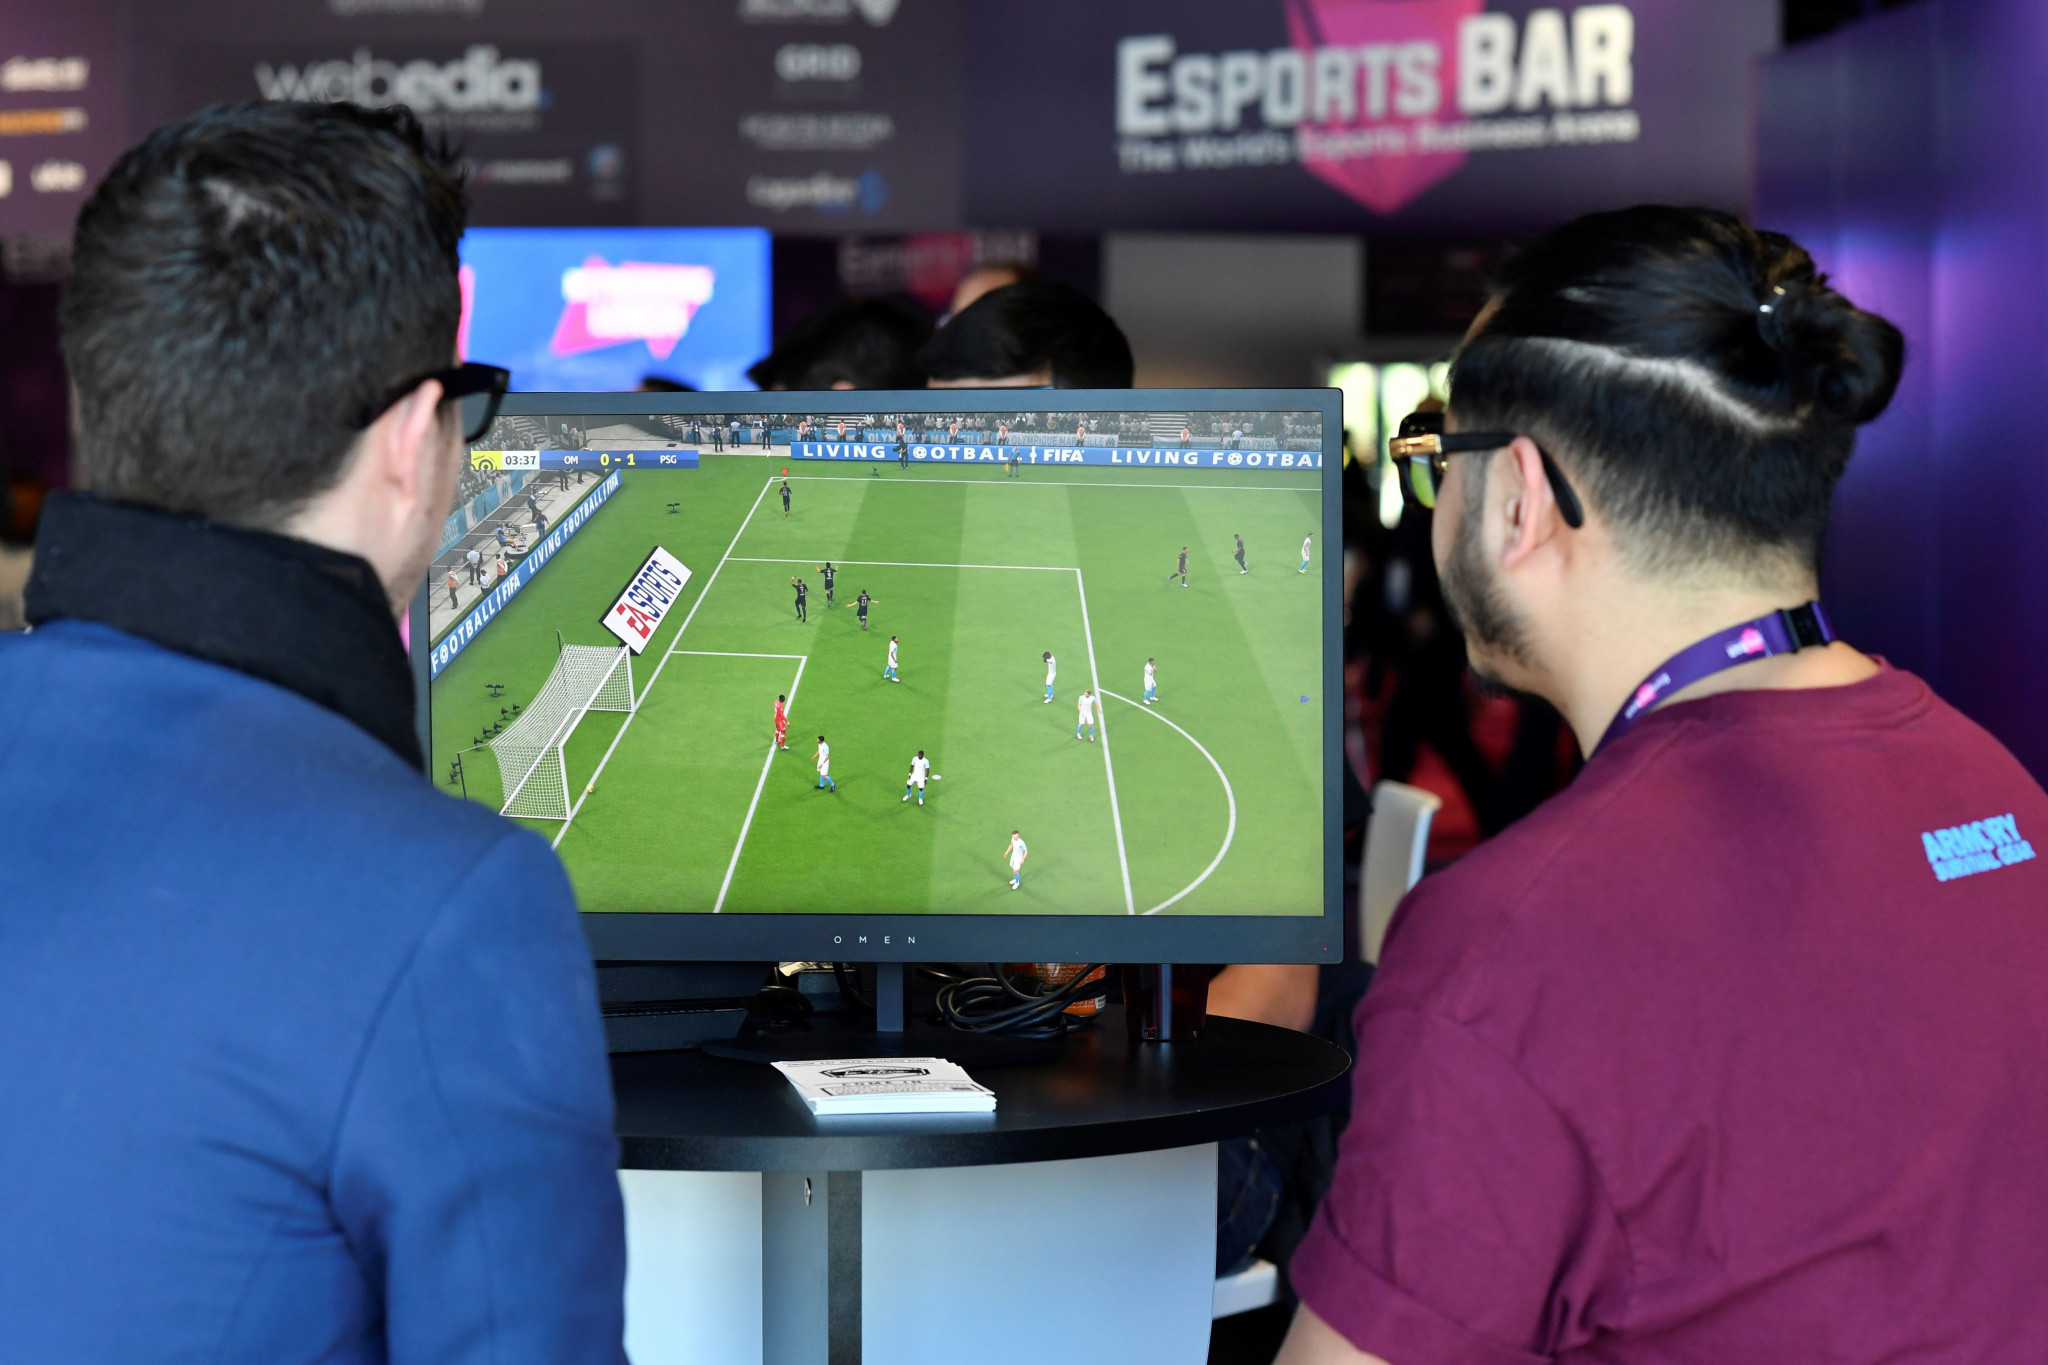 Esports tournament at Minsk 2019 to feature $2,000 prize pool